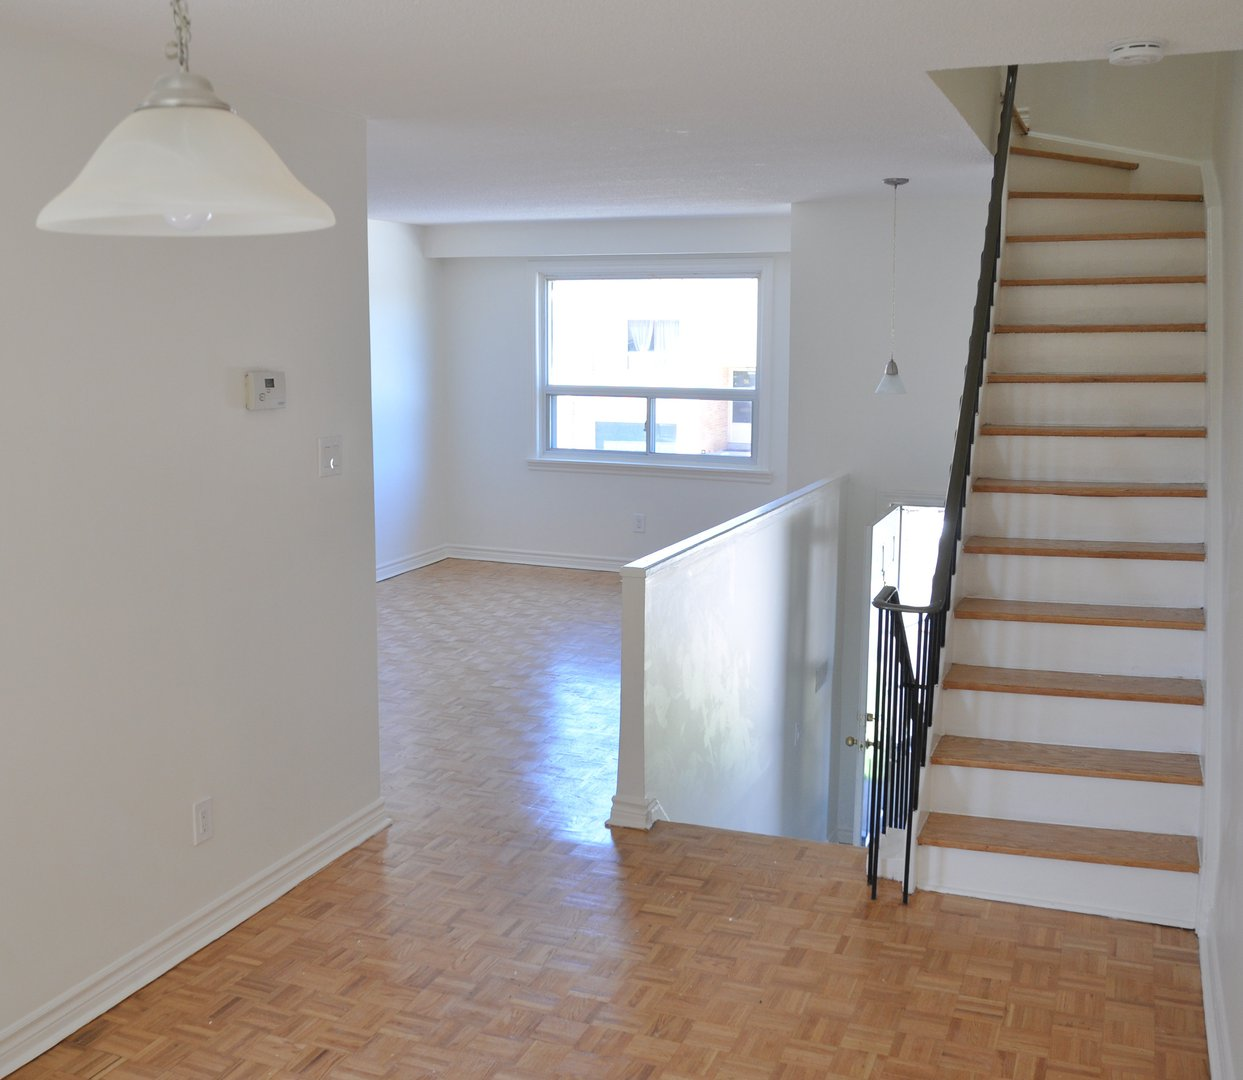 House for rent at 2830 Midland Ave, Scarborough, ON.